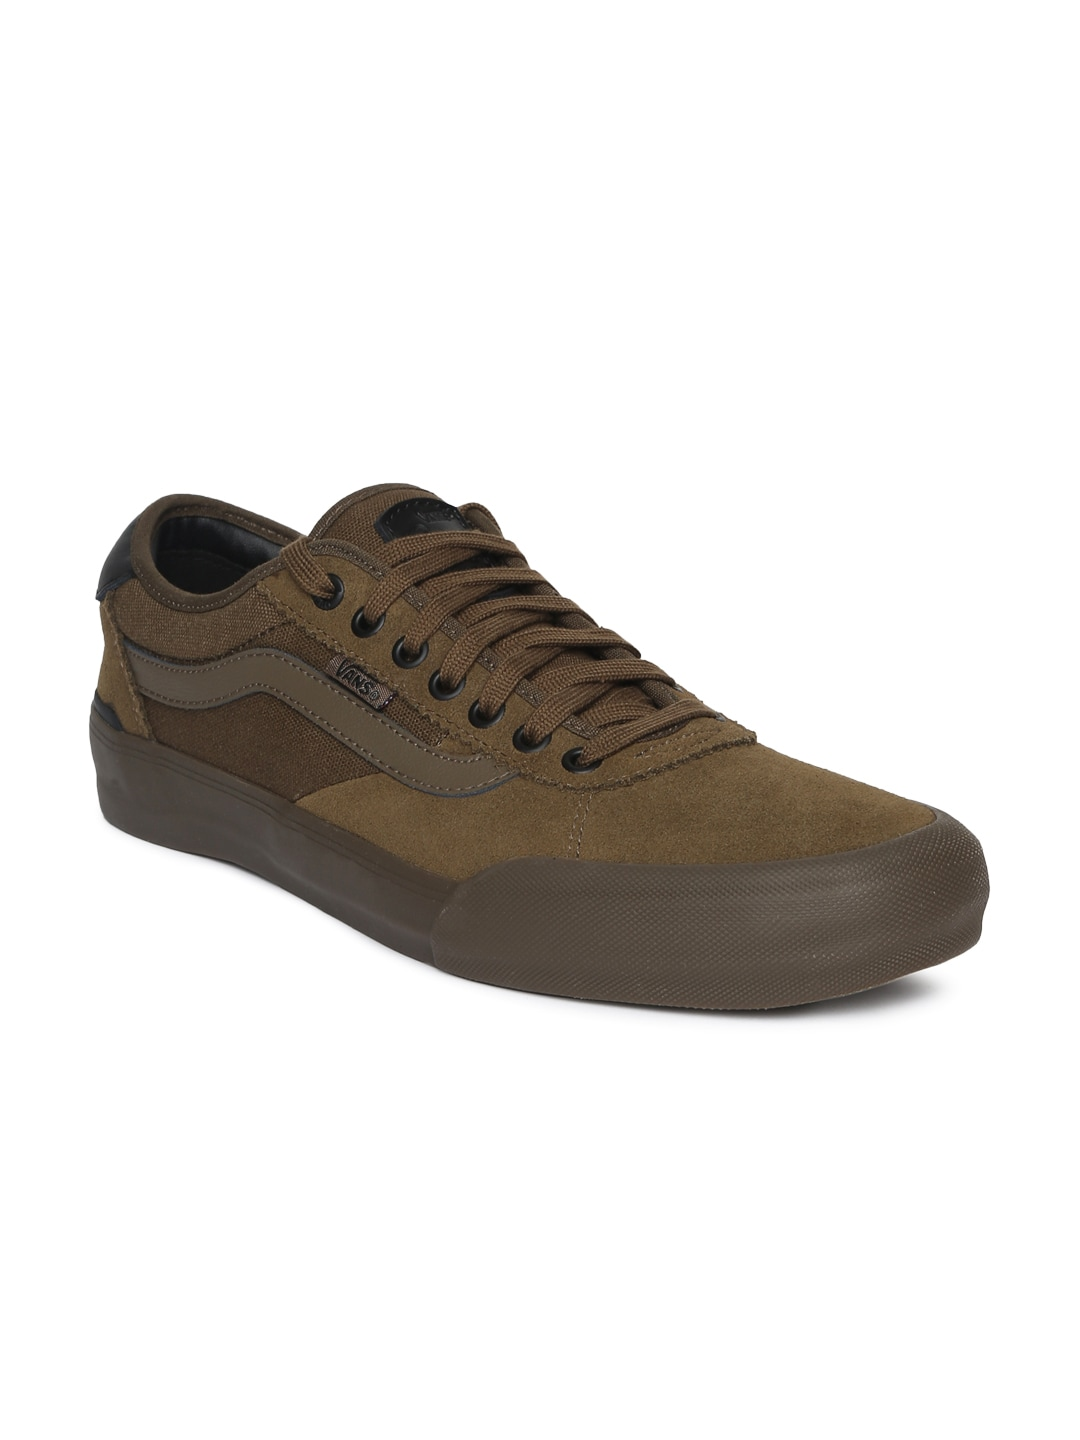 9bd71510831877 Vans Mens Footwear - Buy Vans Mens Footwear online in India